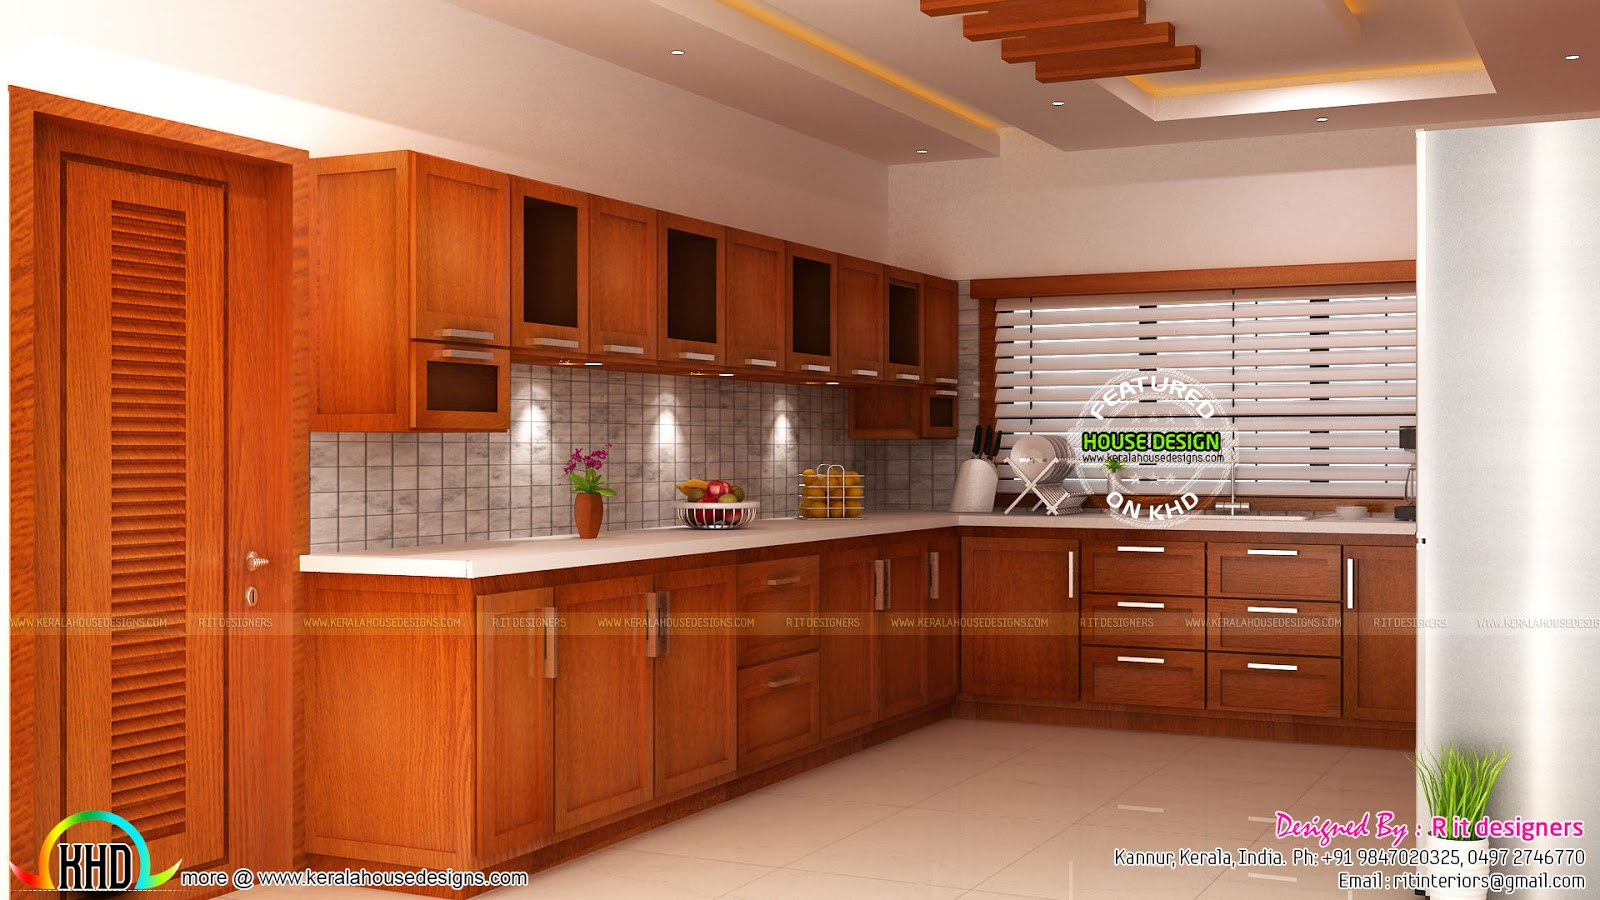 Modular kitchen living and bedroom interior kerala home for Kitchen designs modular